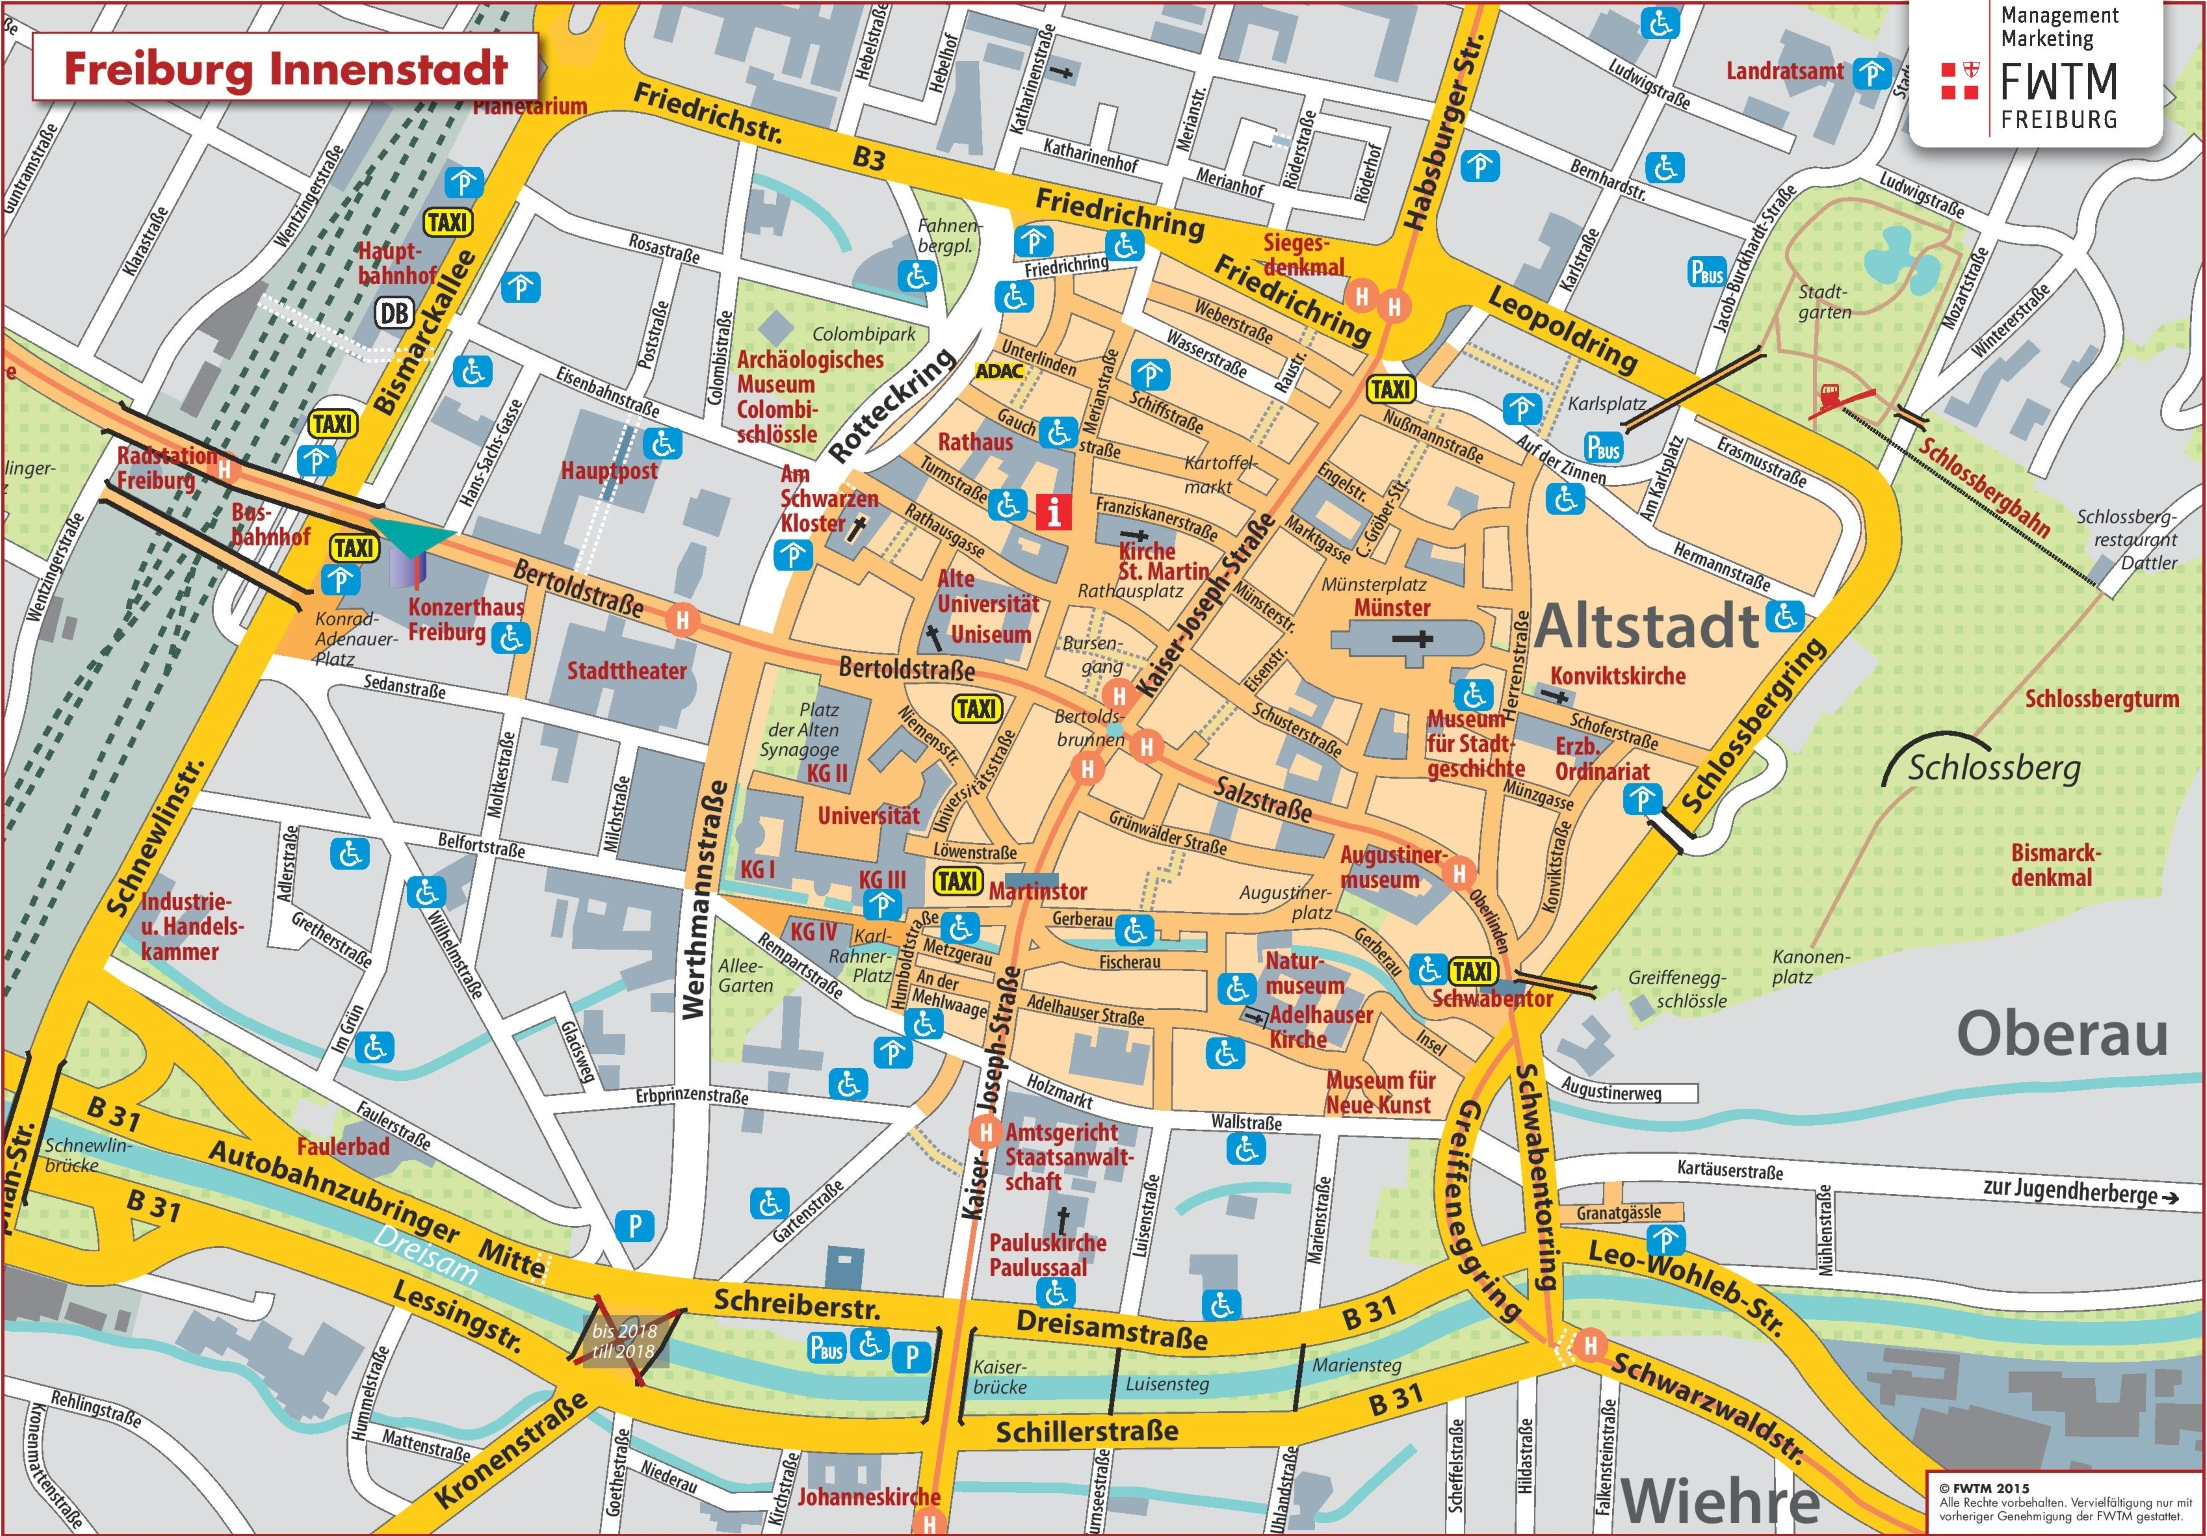 Freiburg city center map